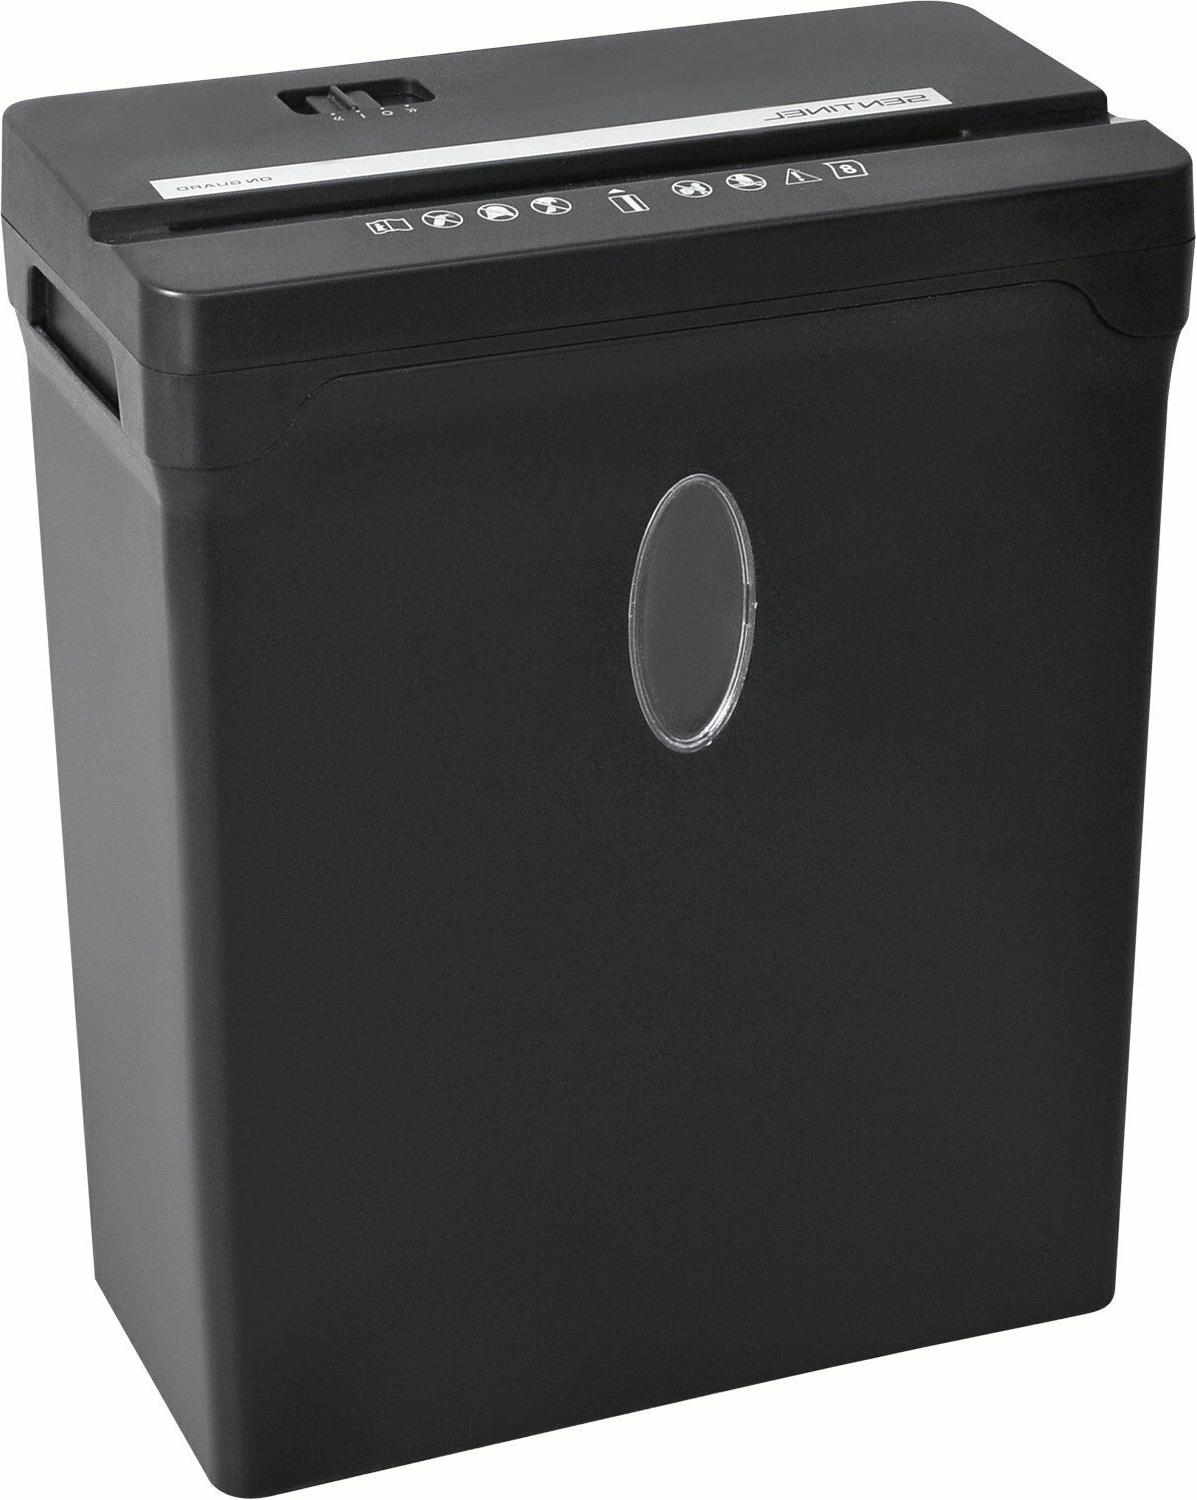 Sentinel Security Cross-Cut Paper/Credit Shredder